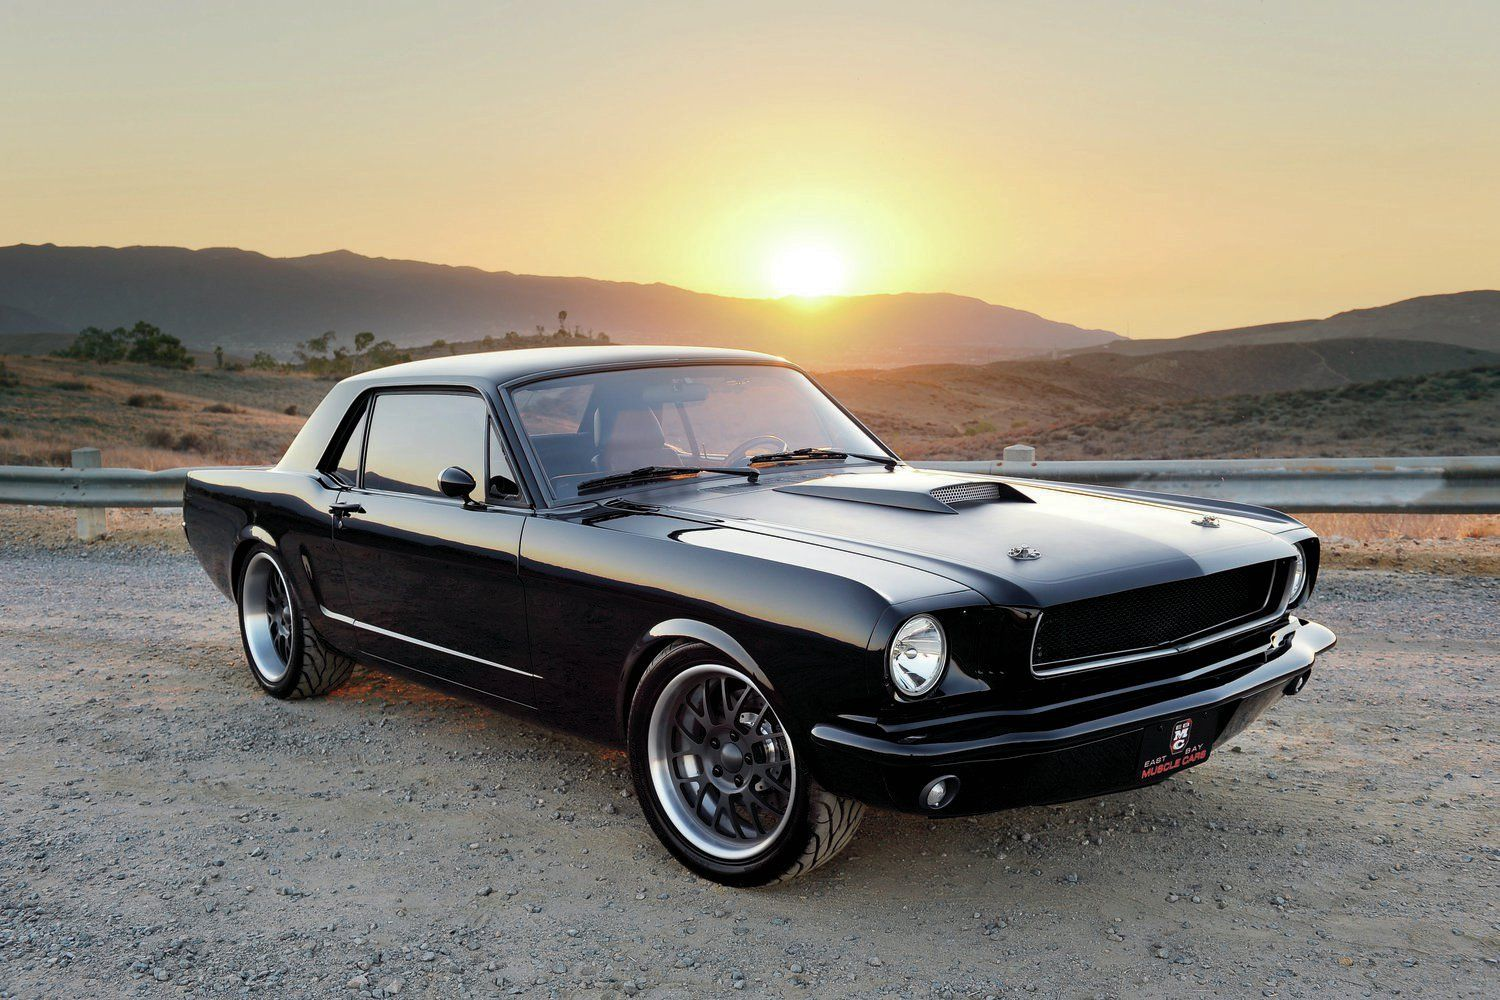 Pin By J Bishop On Dream Car Ford Mustang Coupe 1965 Mustang